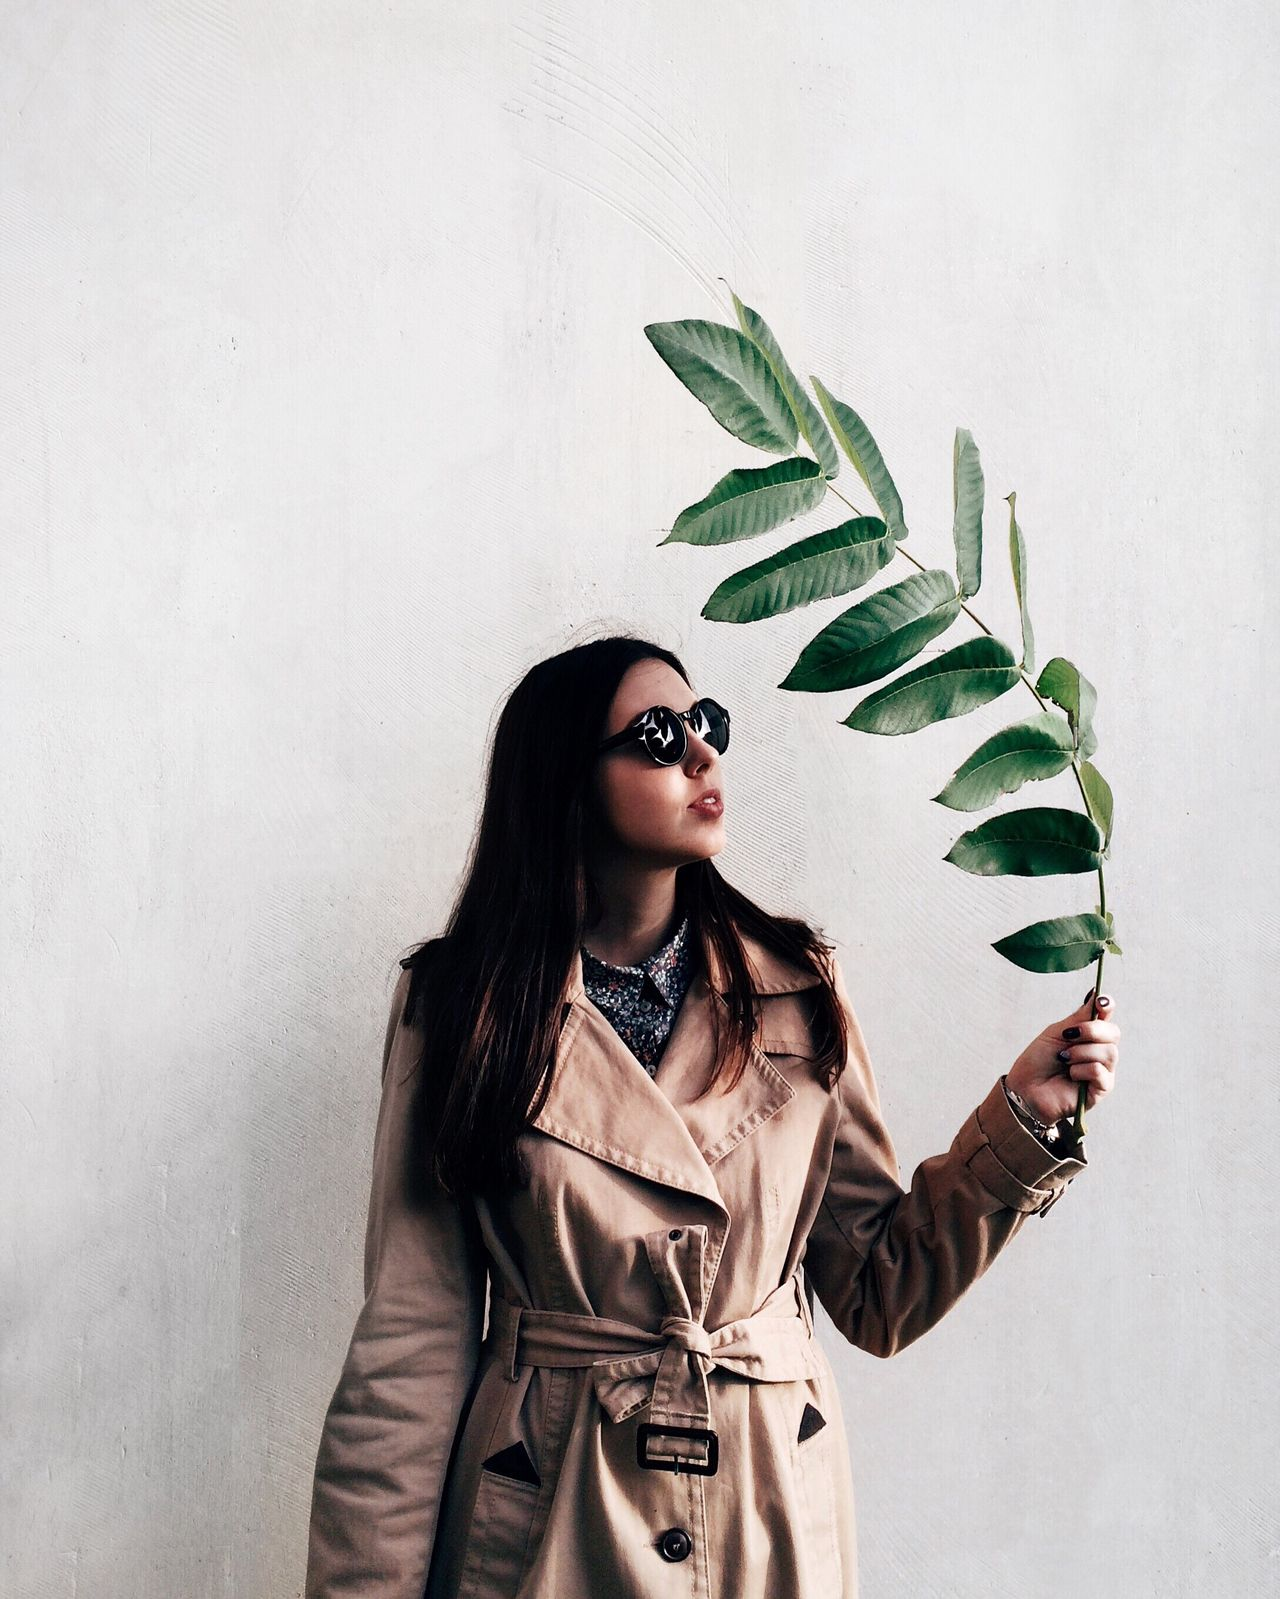 Woman holding twig with green leaves while standing against wall